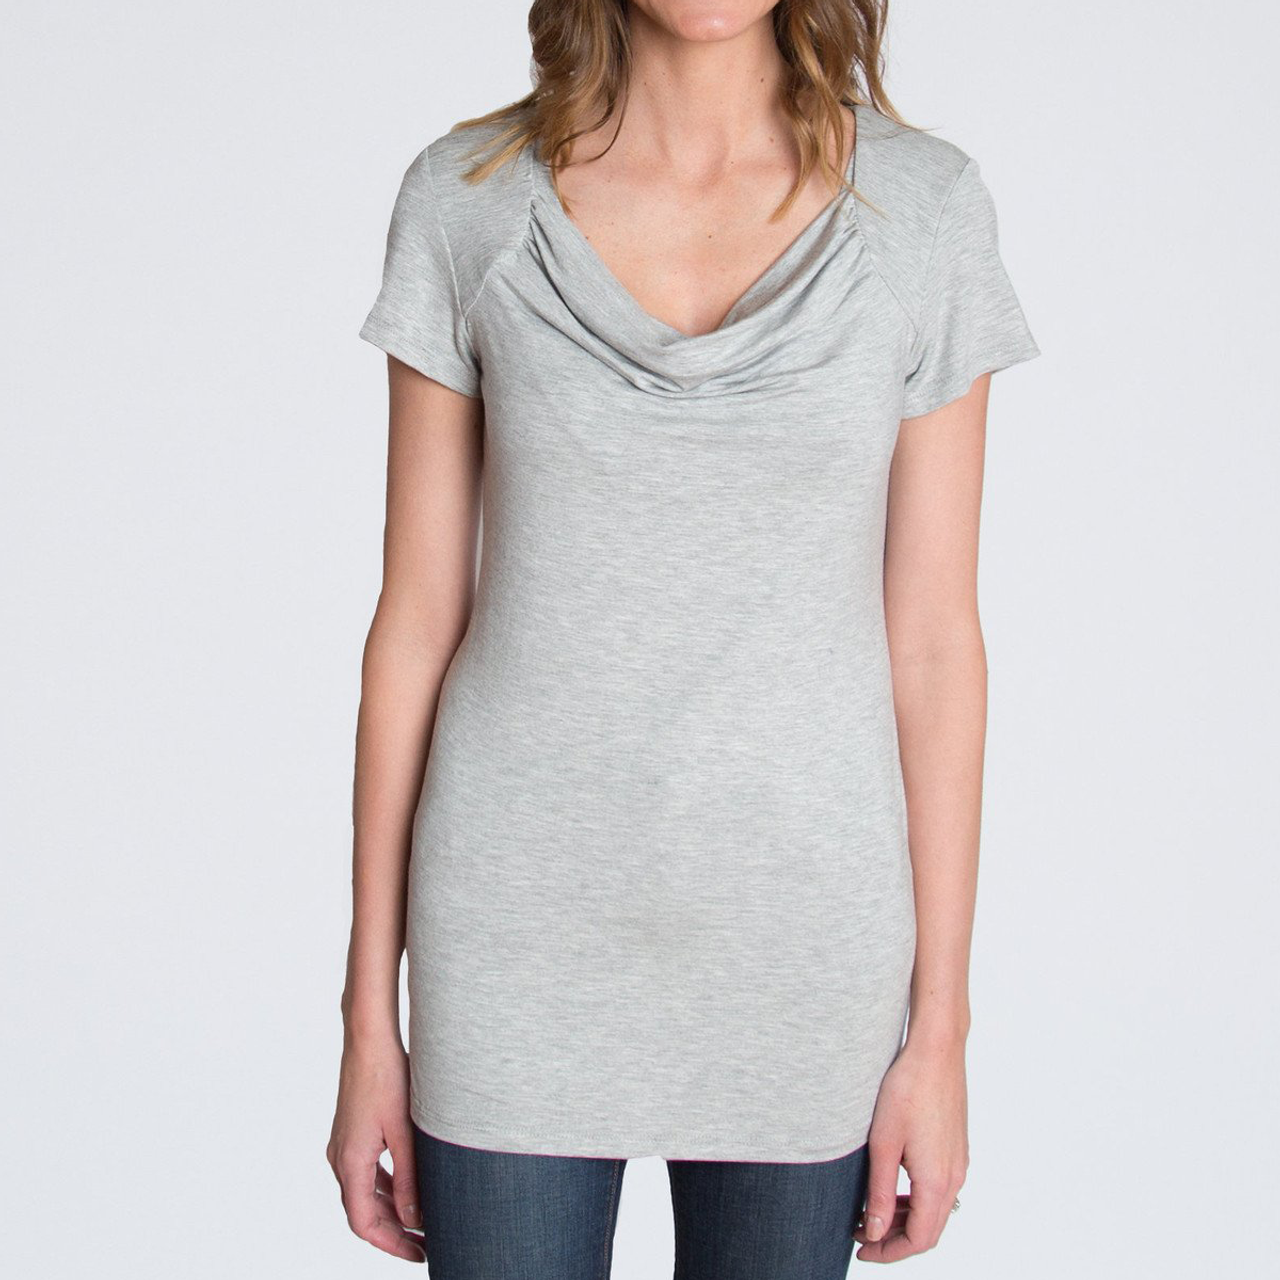 c3839d3570bdd Cowl Nursing Top, Heather Gray - Spearmint Ventures, LLC